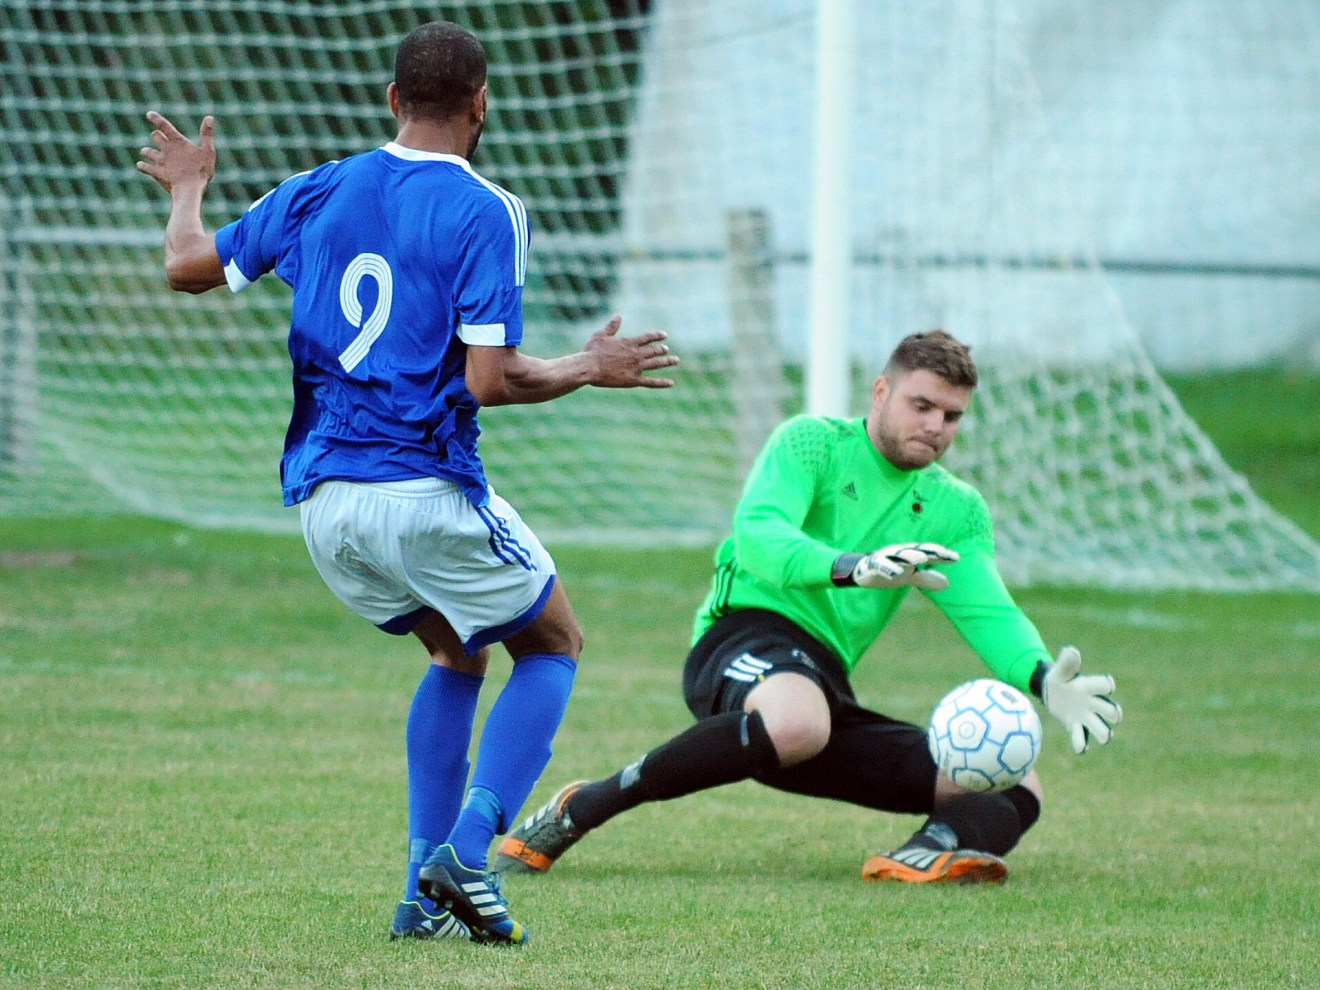 Bracknell keeper Chris Grace saves in the first half against the Highmoor No9 Anthony White, who gets a brace in the second half for Highmoor-IBIS. Photo: Mark Pugh.